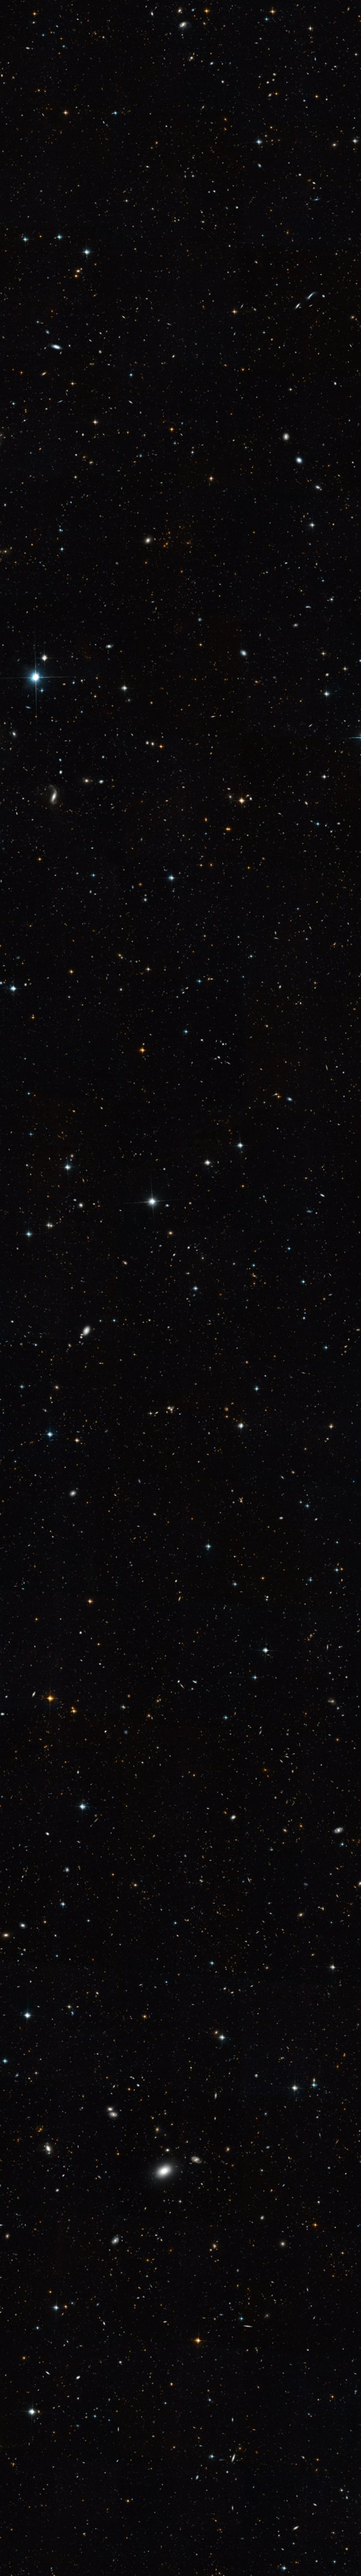 Extended Groth Strip - Full Hubble Image